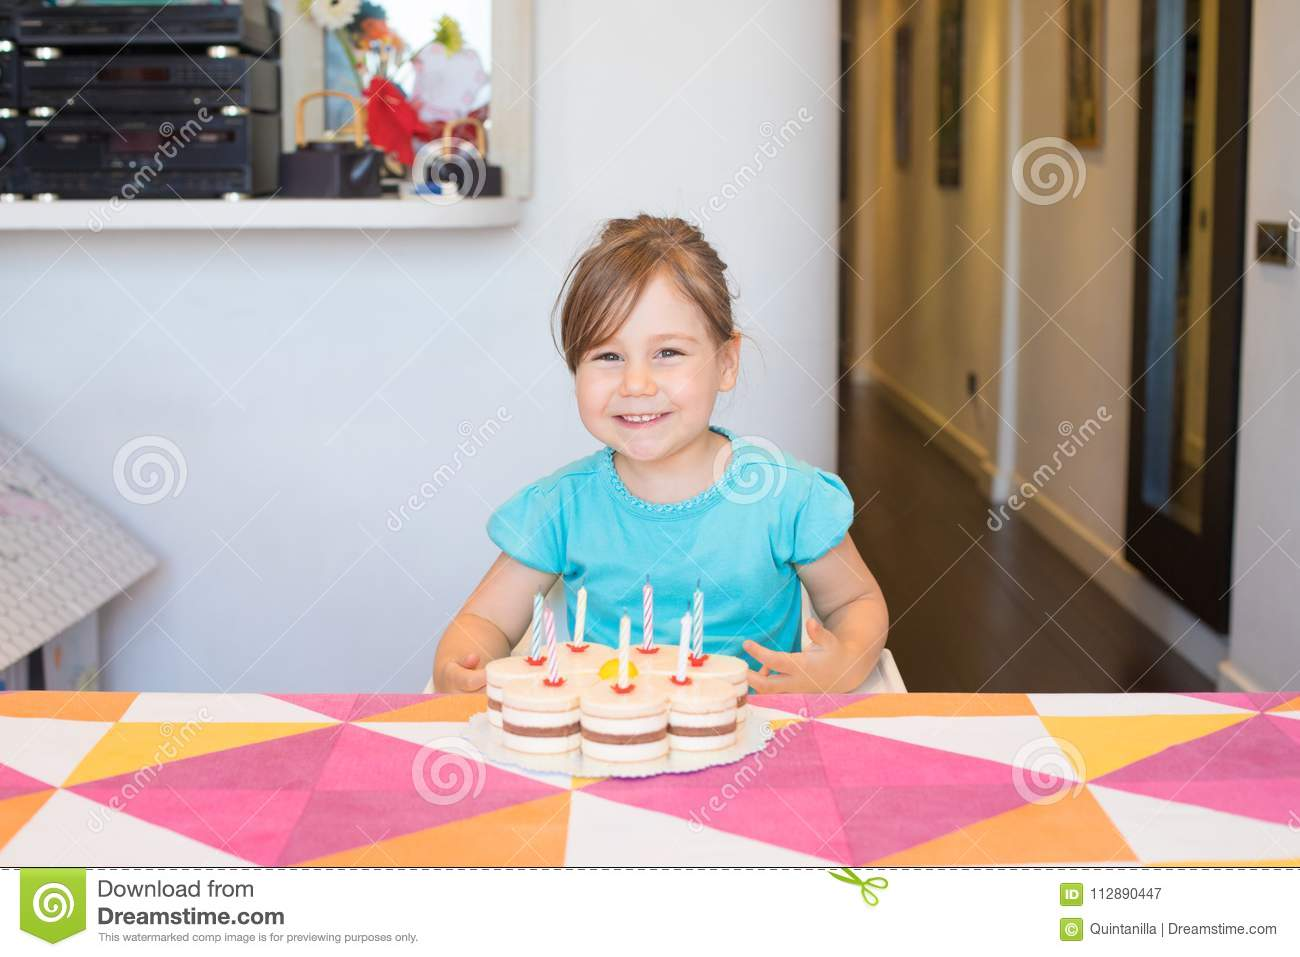 Portrait of happy child with birthday cake